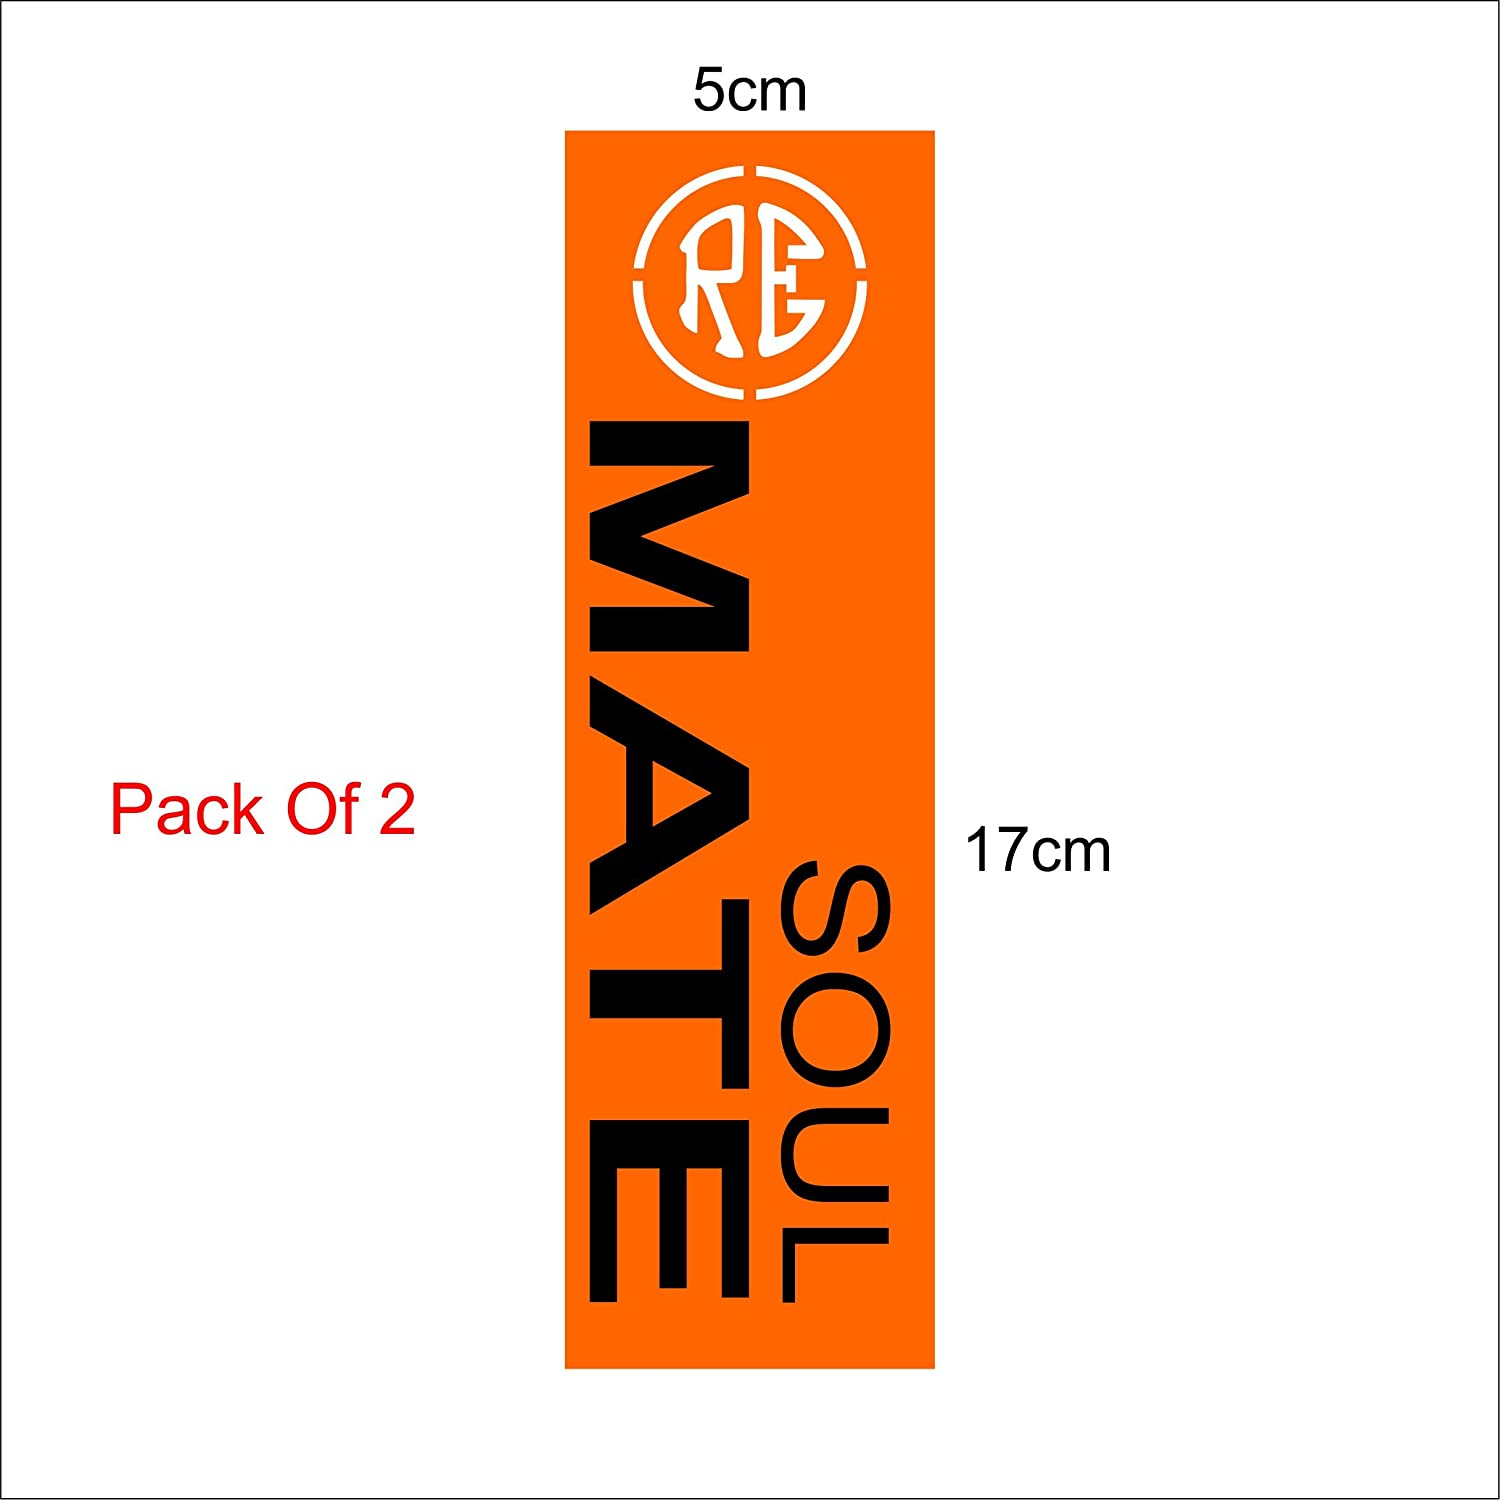 Isee360 soul mate with white re logo orange background stem sticker for royal enfield classic 350 bike 500 black stem visor chaise car windows rear